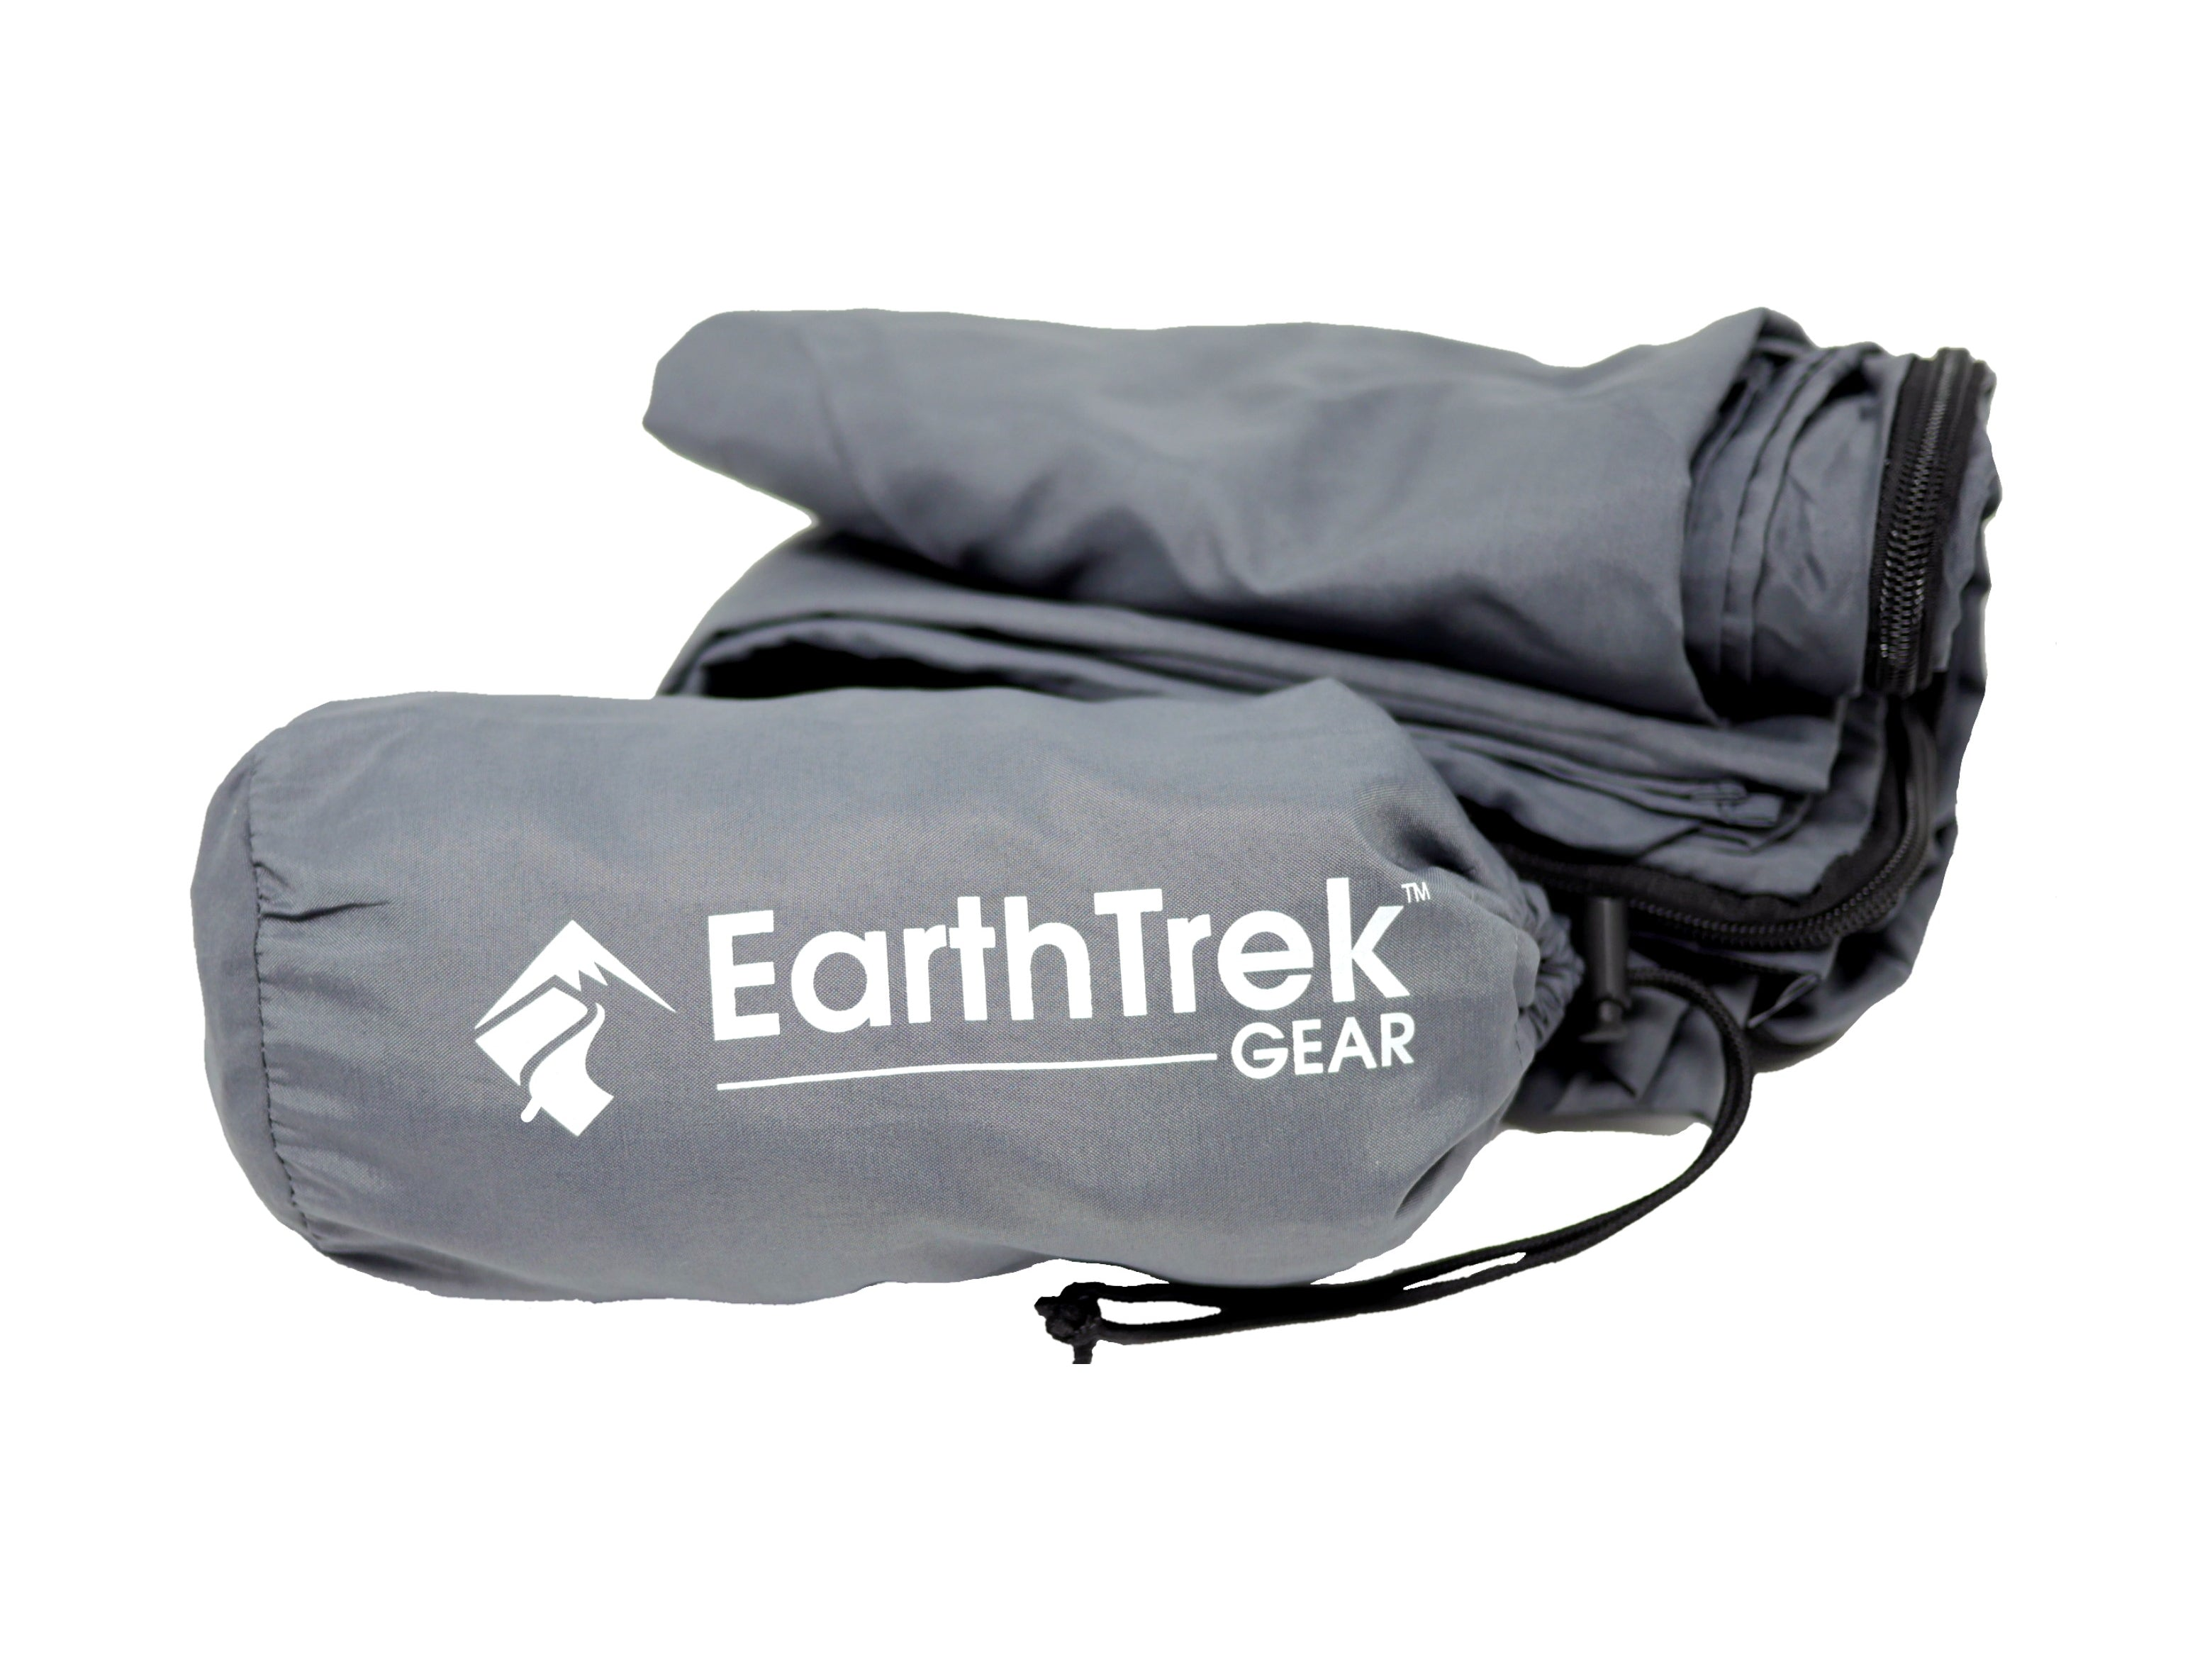 extra-large-comfy-travel-sleepingbag-liner